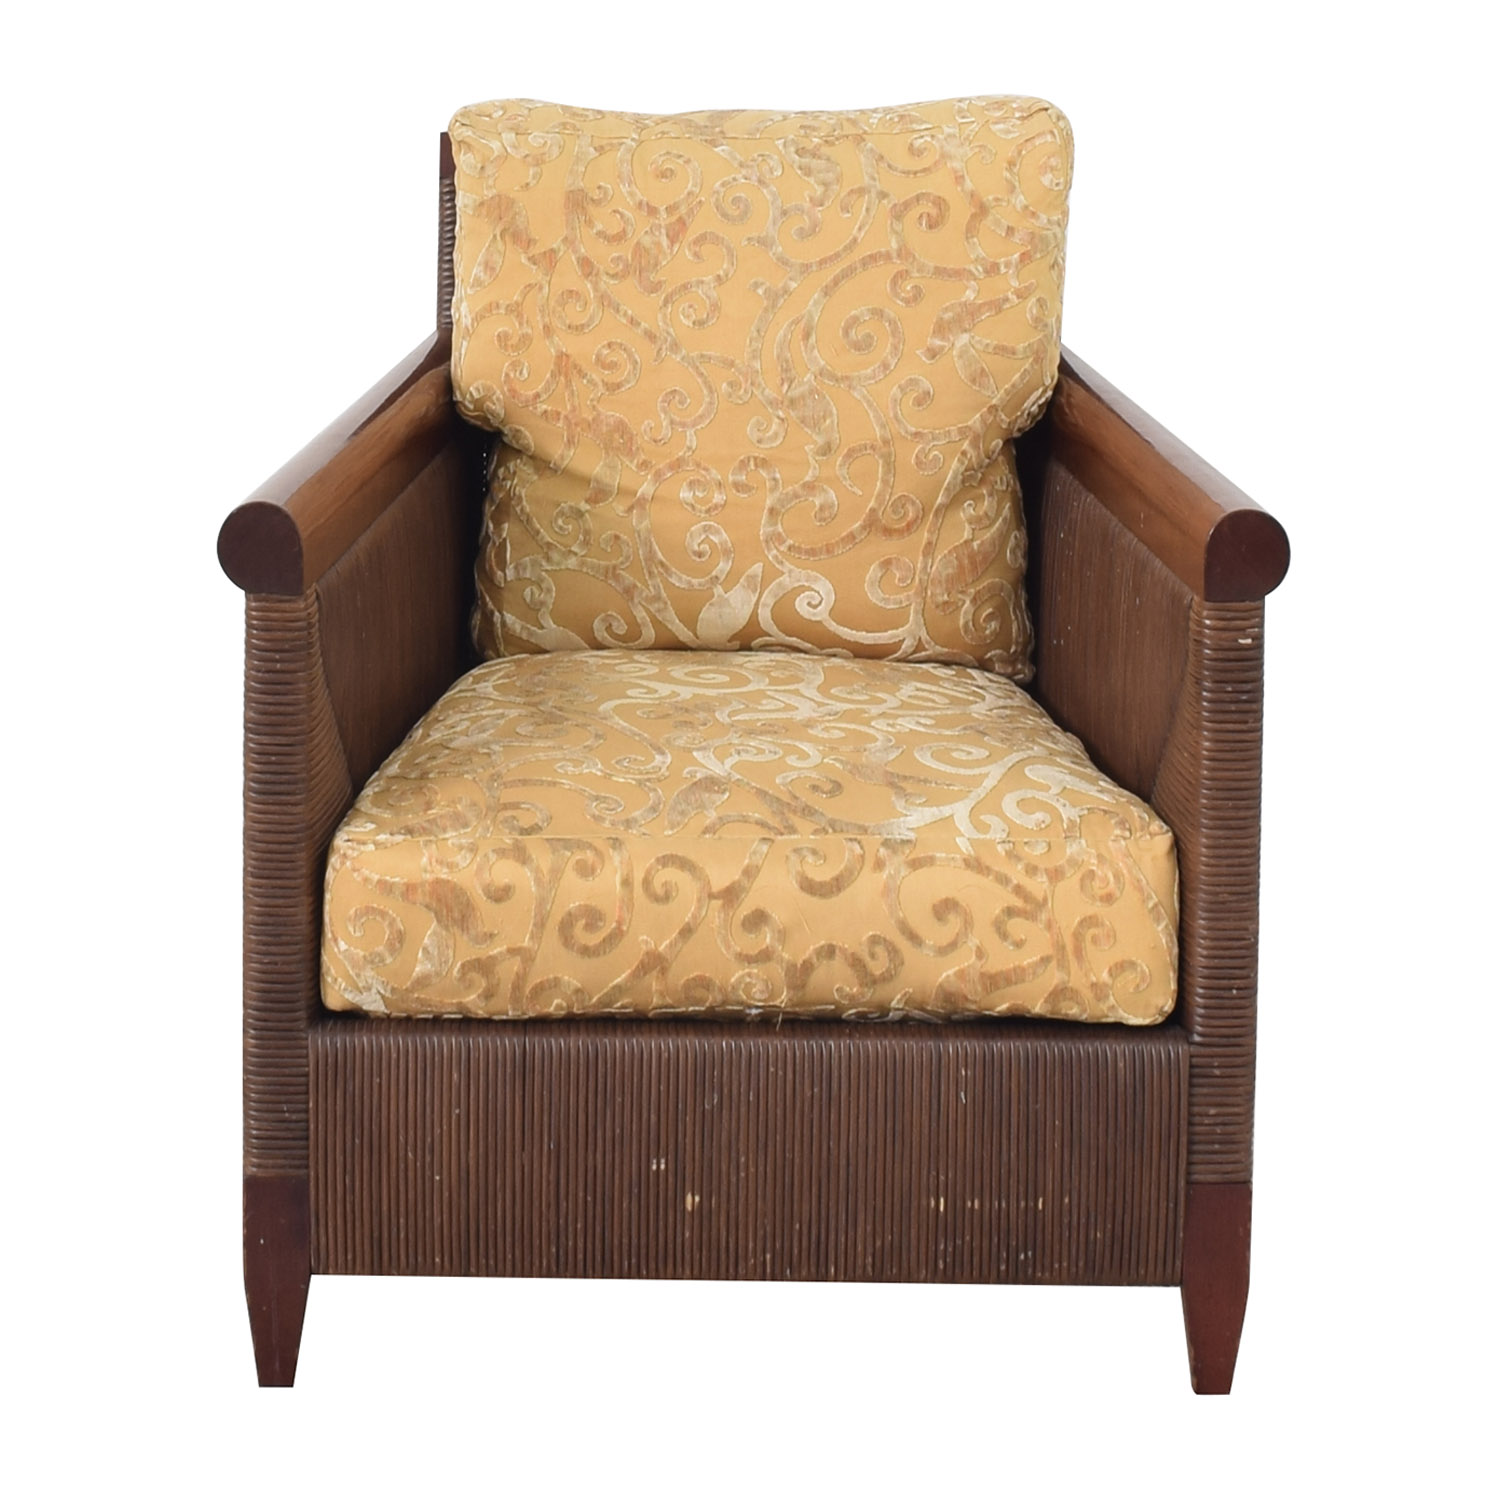 buy Donghia by John Hutton Mahogany and Wicker Lounger Donghia Accent Chairs